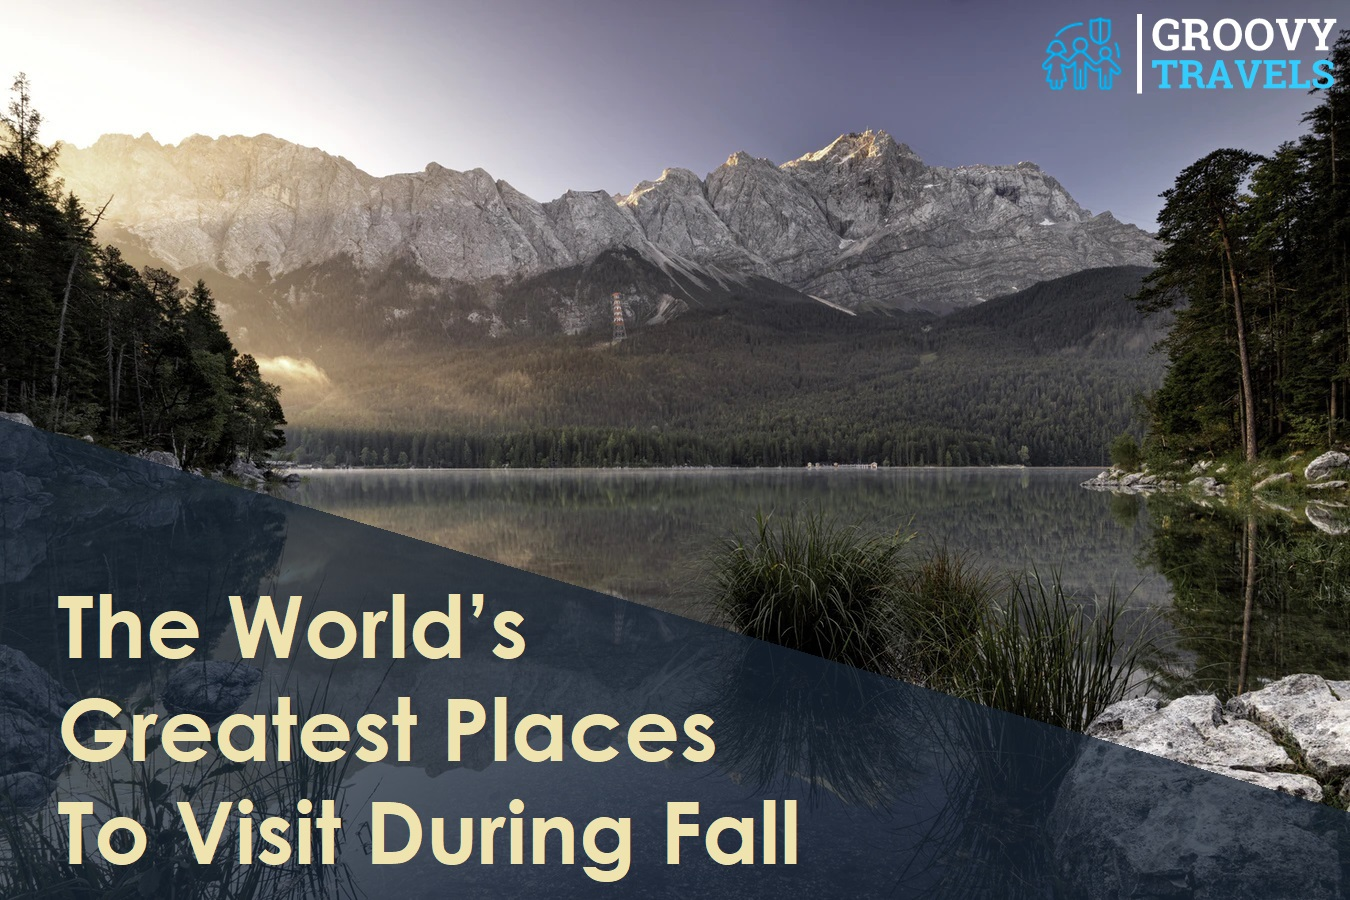 The World's Greatest Places To Visit During Fall